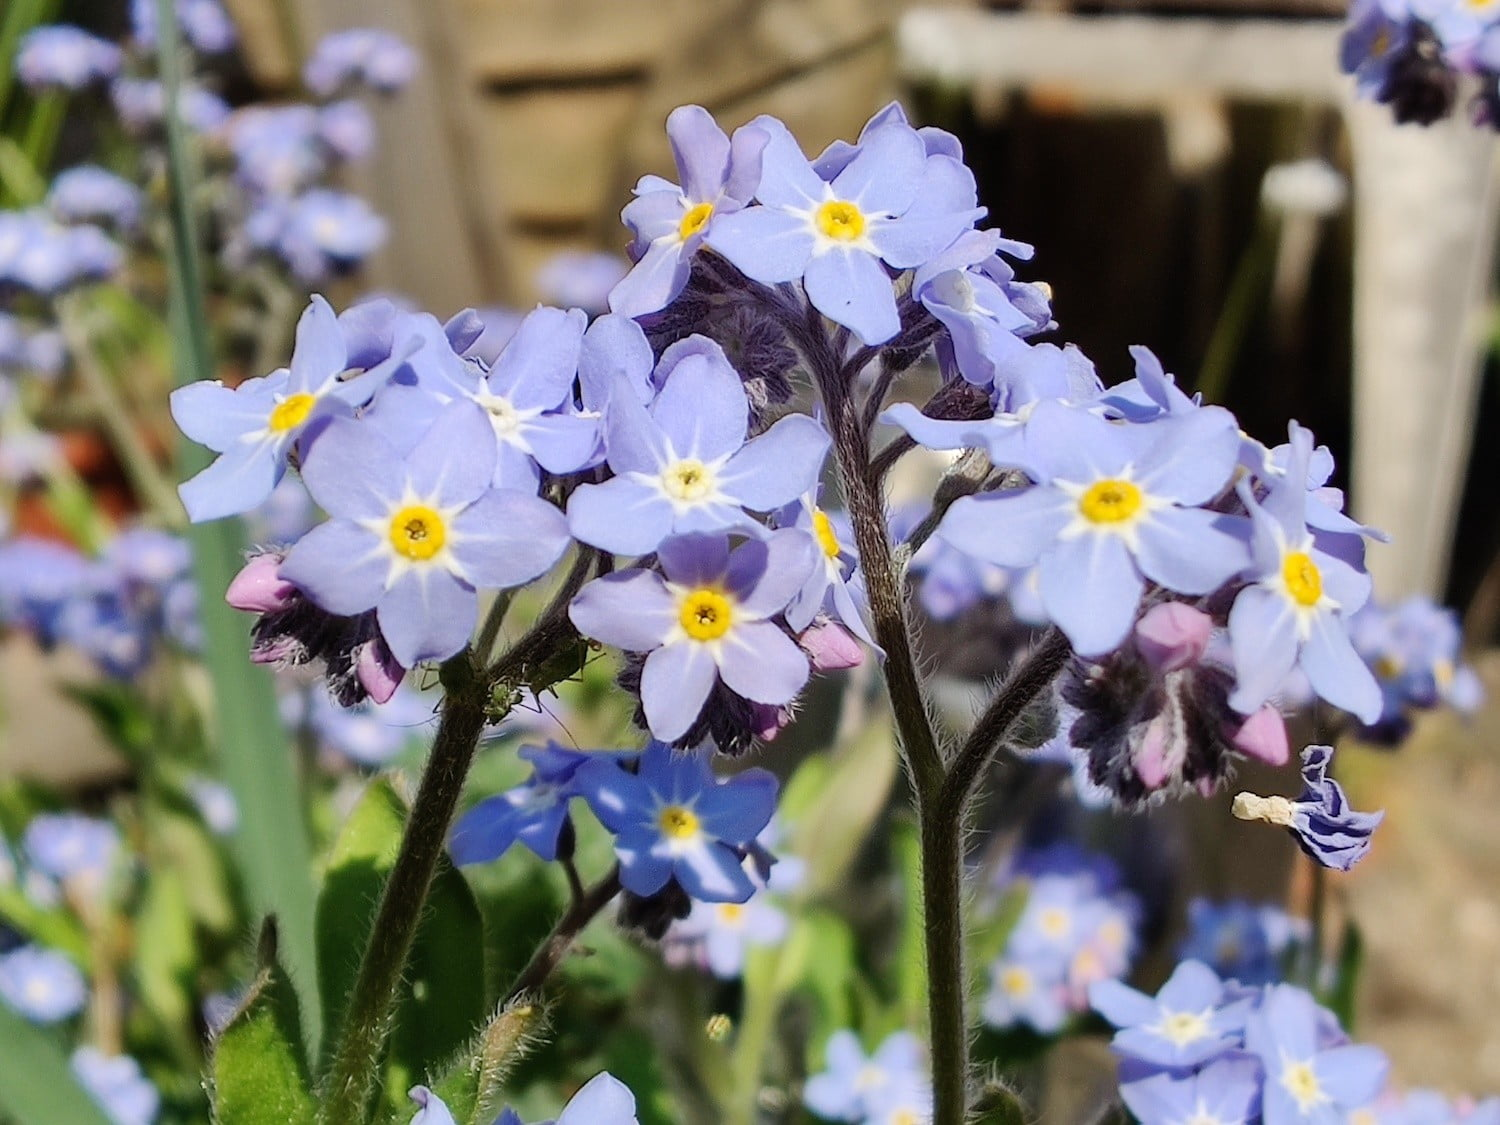 oneplus 8 pro review blue flowers